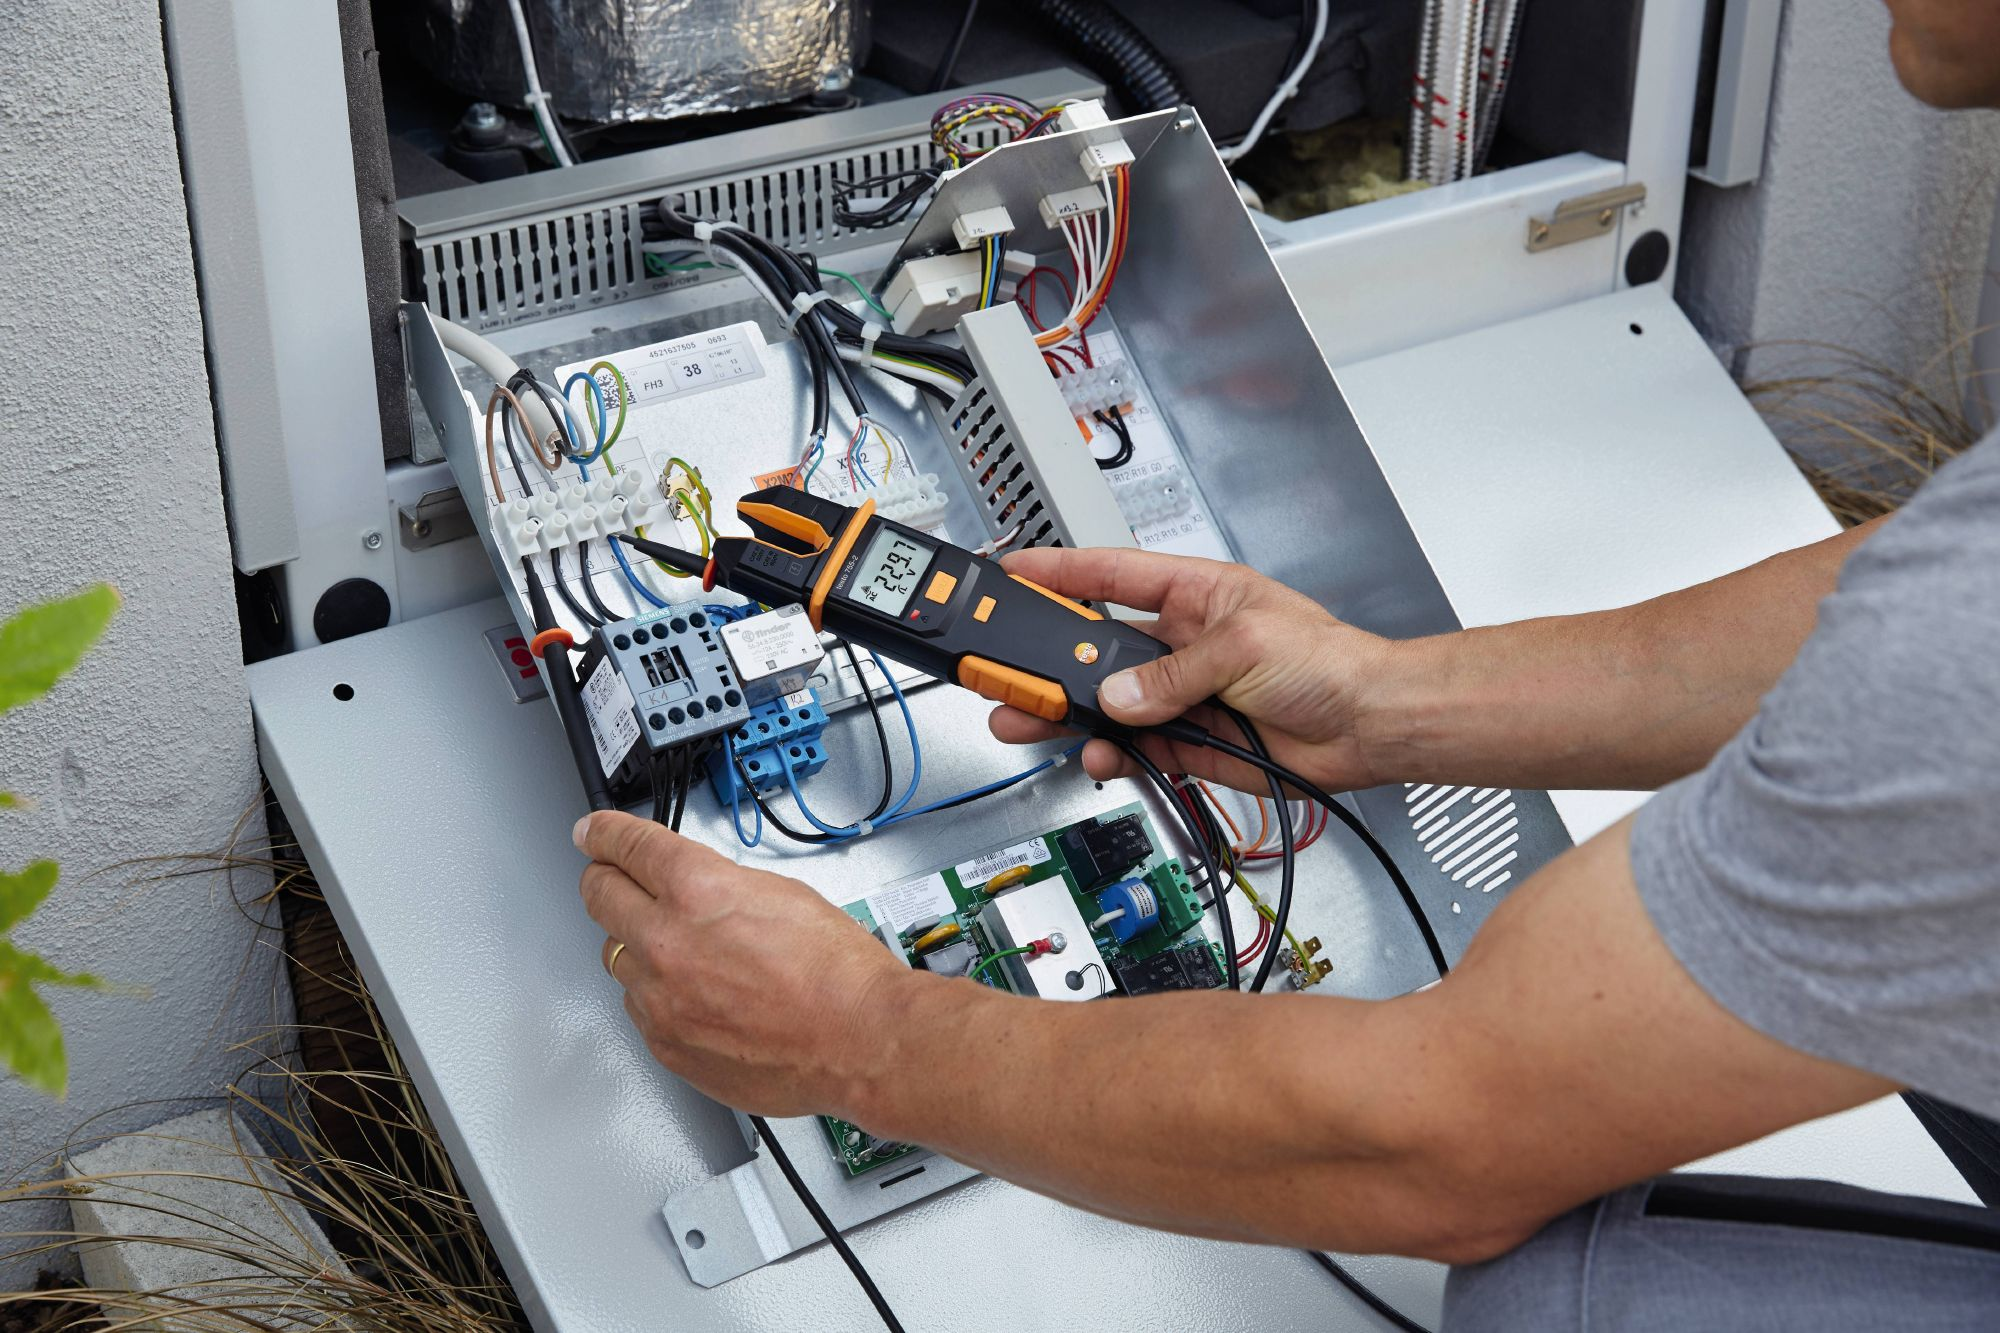 Test electrical installations with current tester